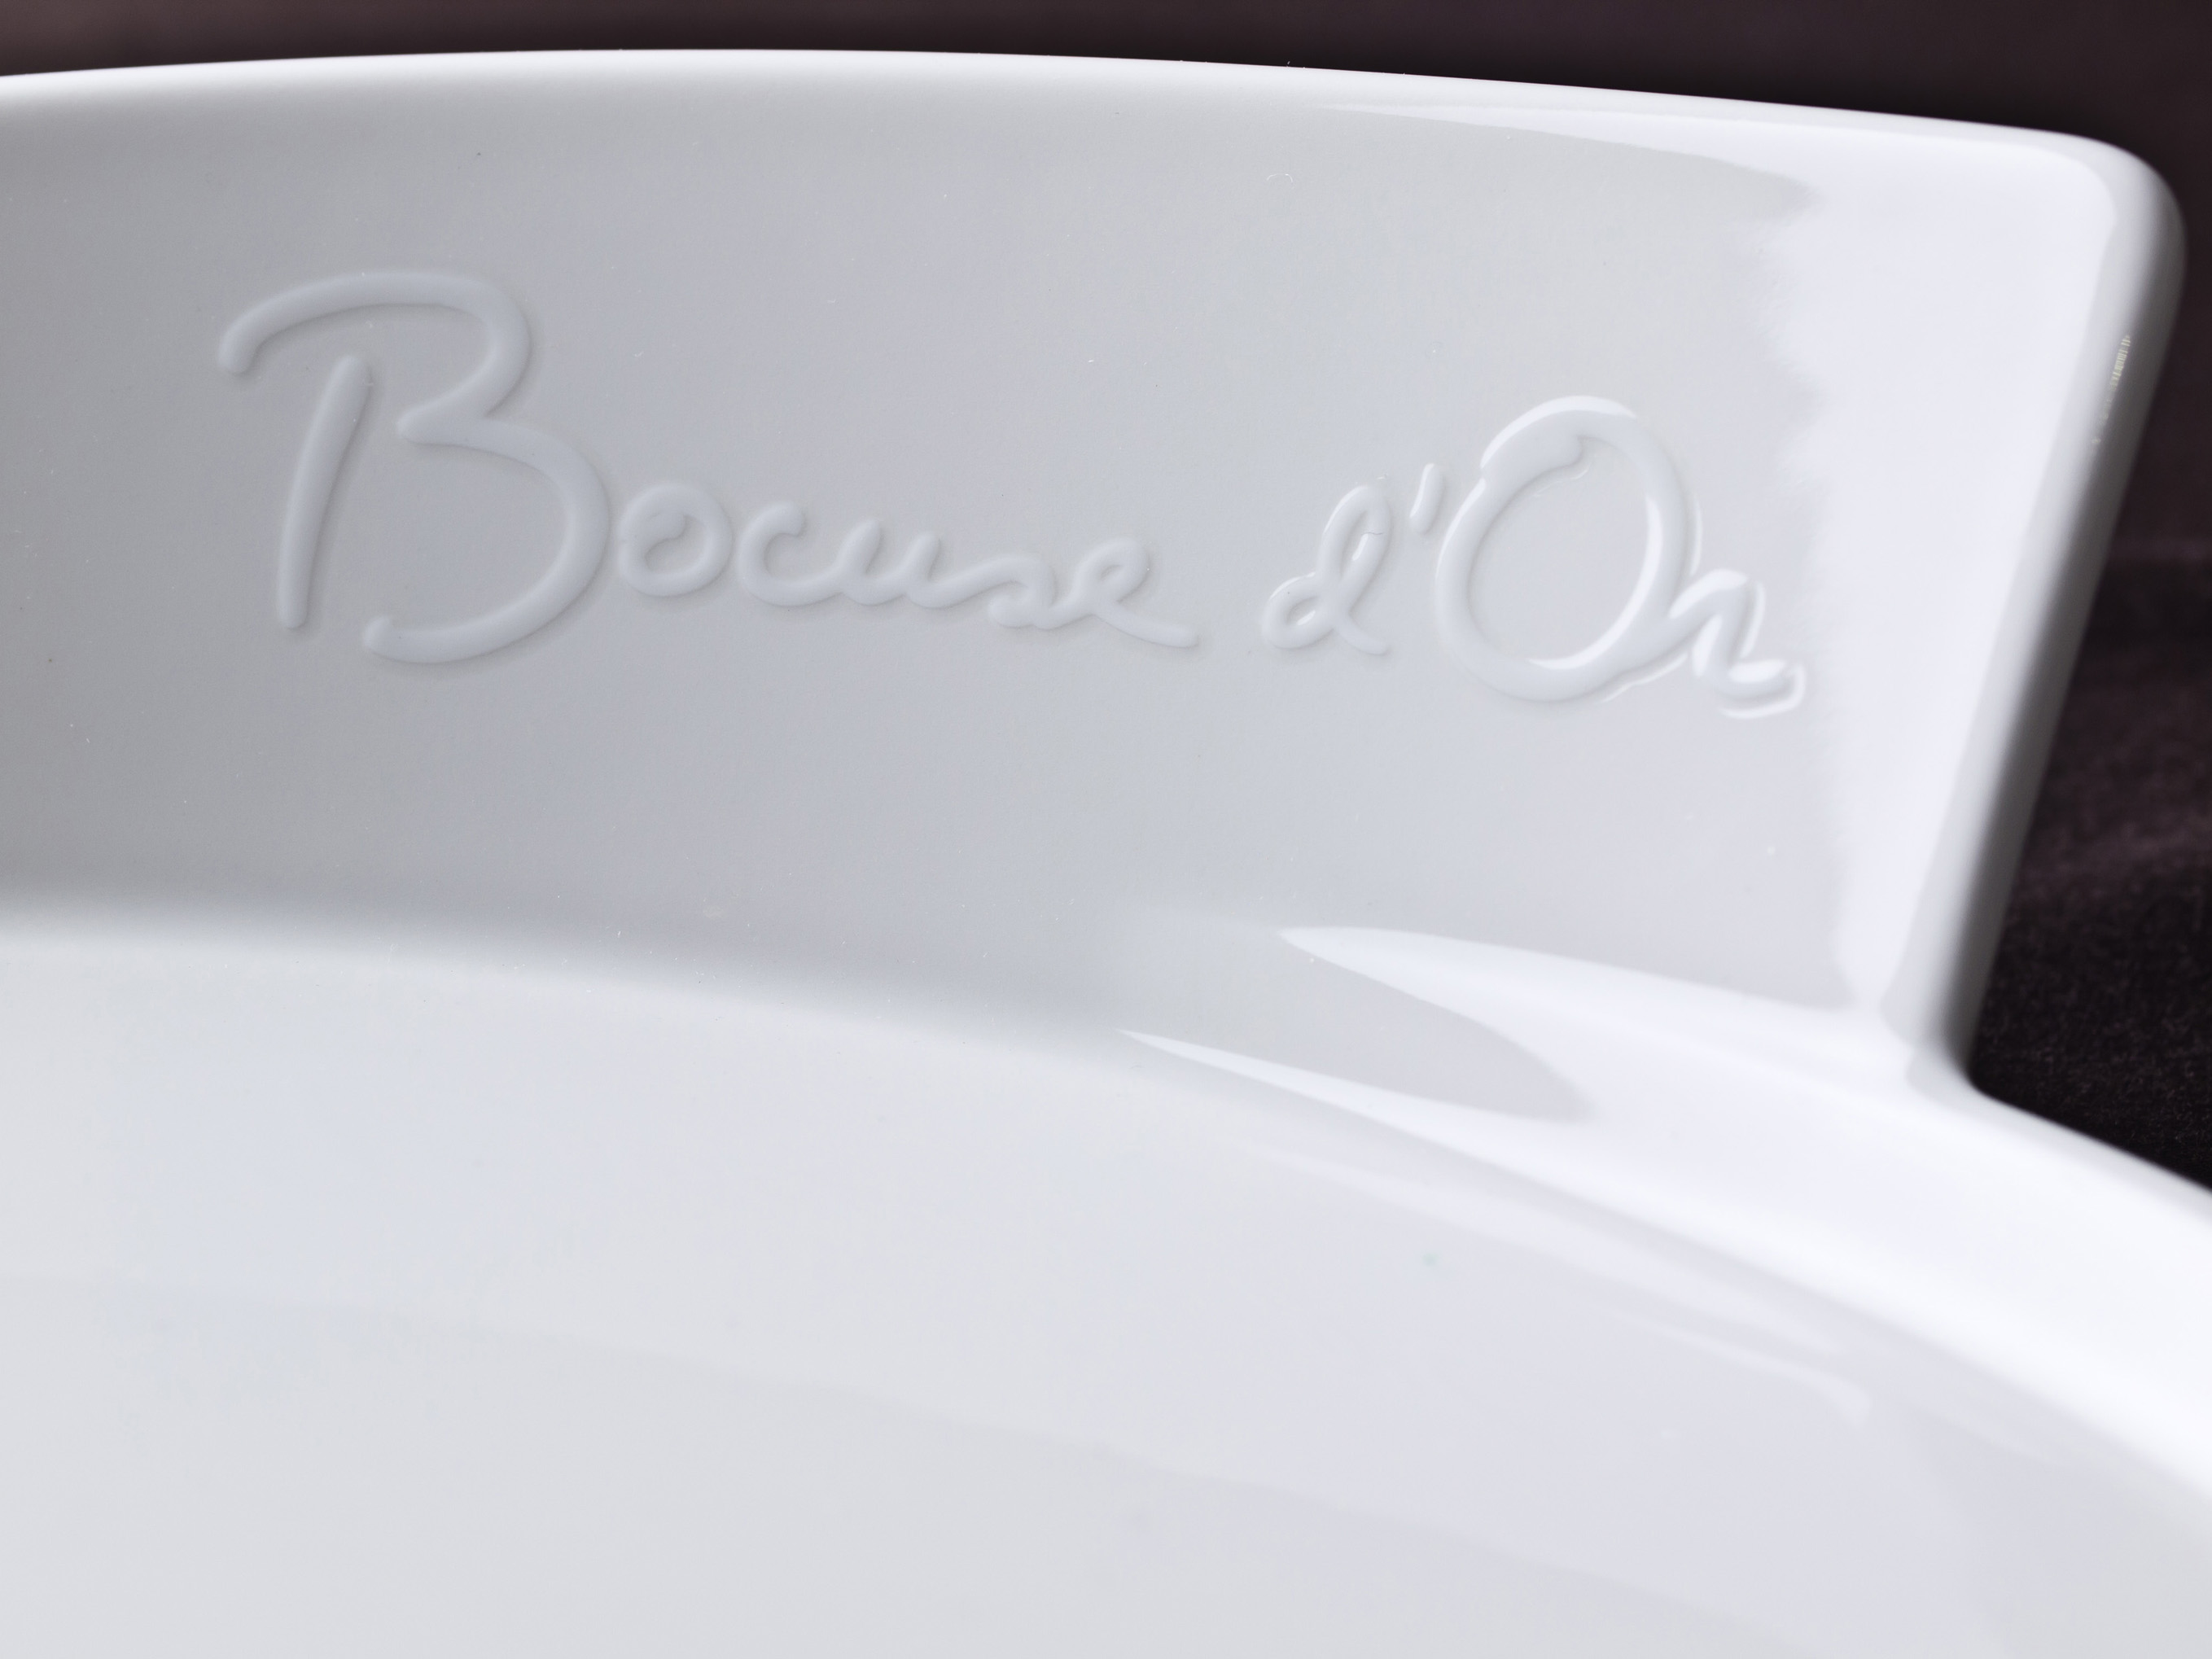 VB_BocuseDOr_c2bb9b837a003.jpg